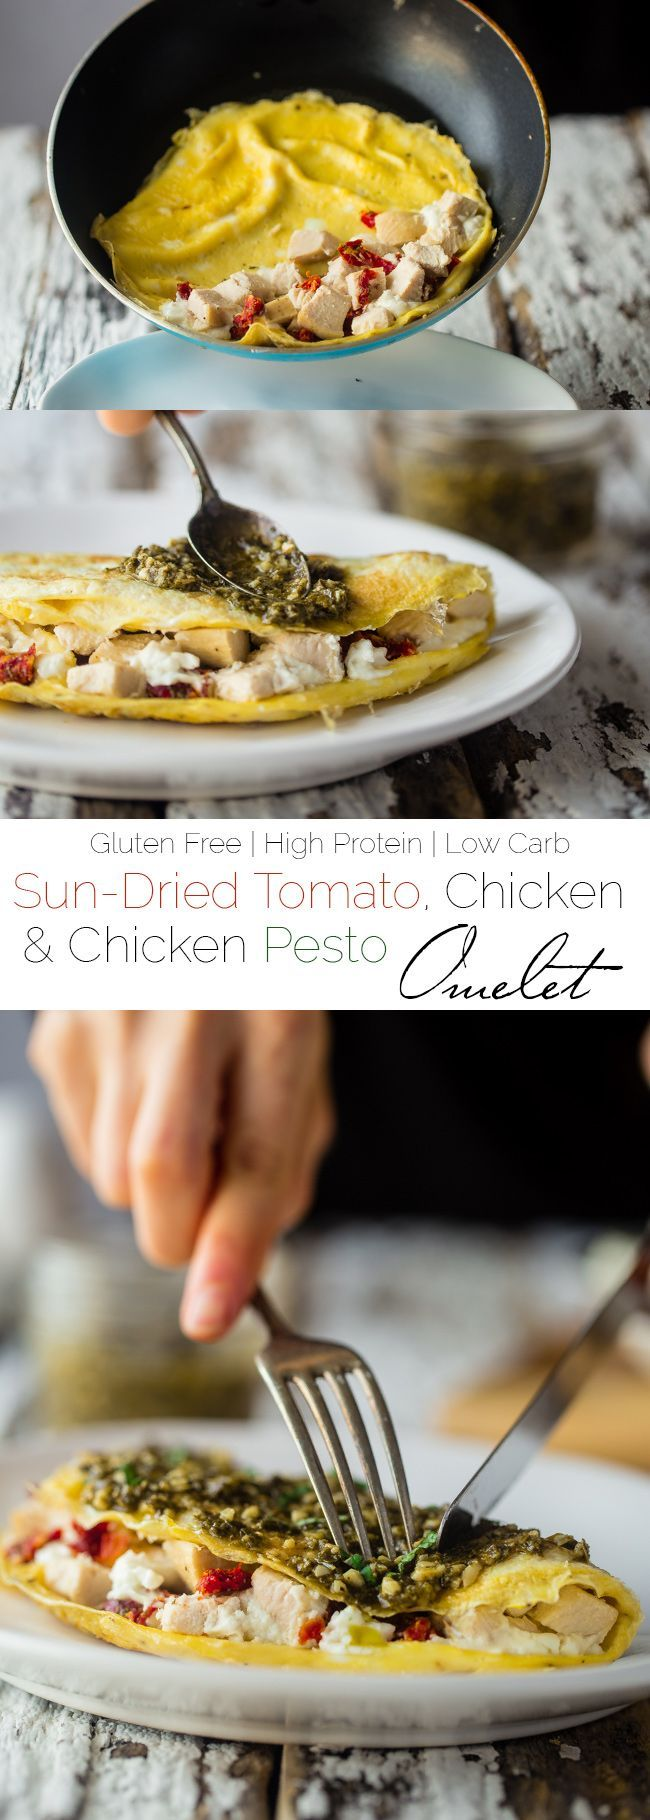 Pesto Chicken Egg White Omelette with Goat Cheese - This quick and ...